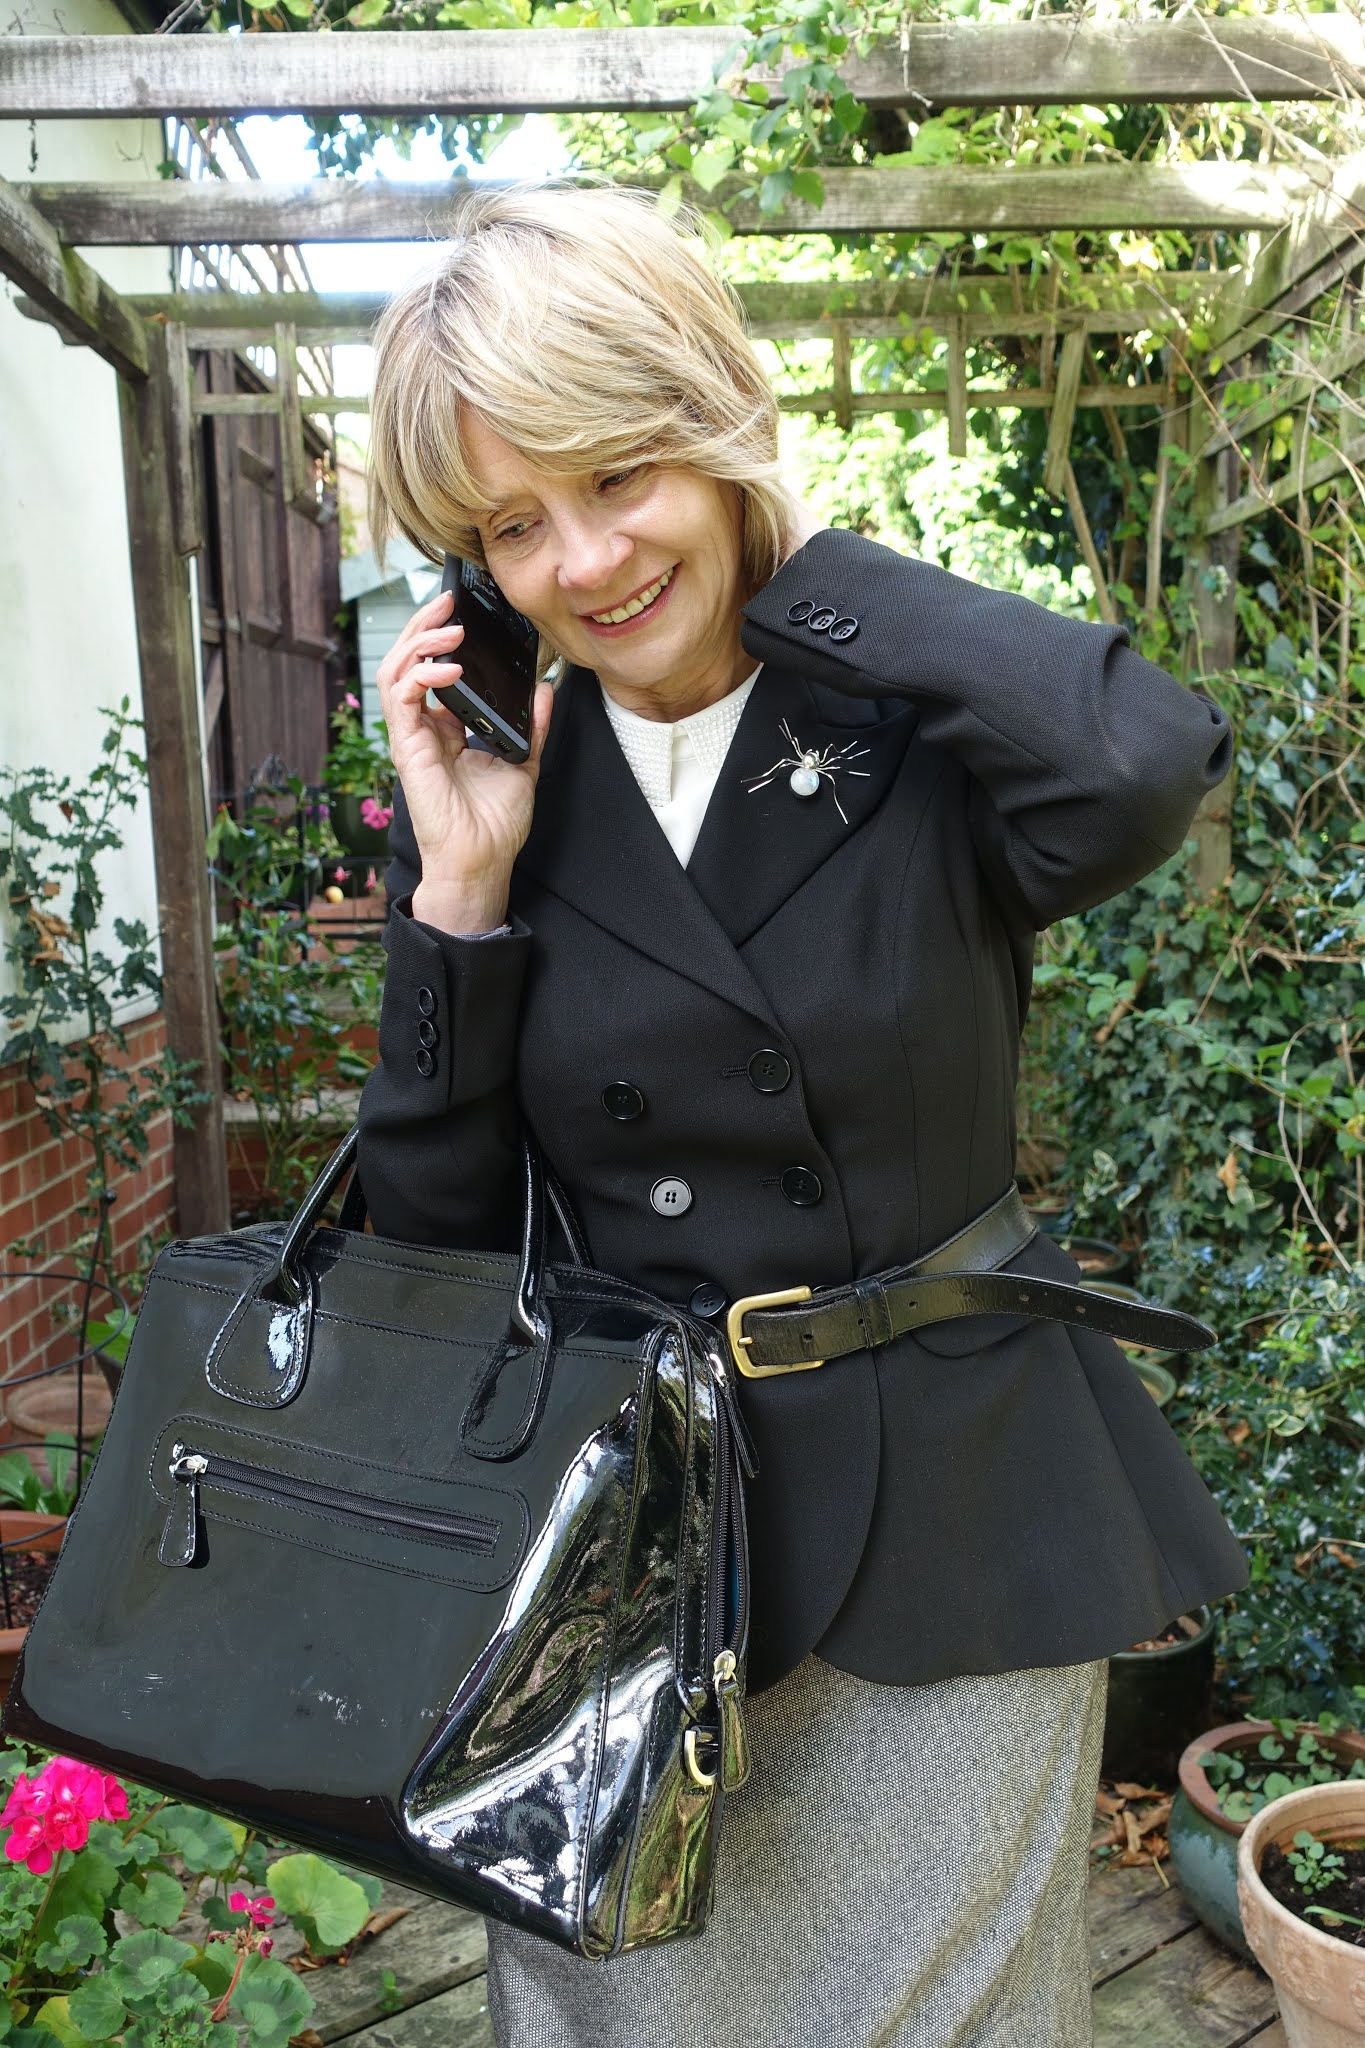 Over 50s fashion blogger Gail Hanlon from Is This Mutton in crisp tailoring to impress at work - if she was able to go to the office!